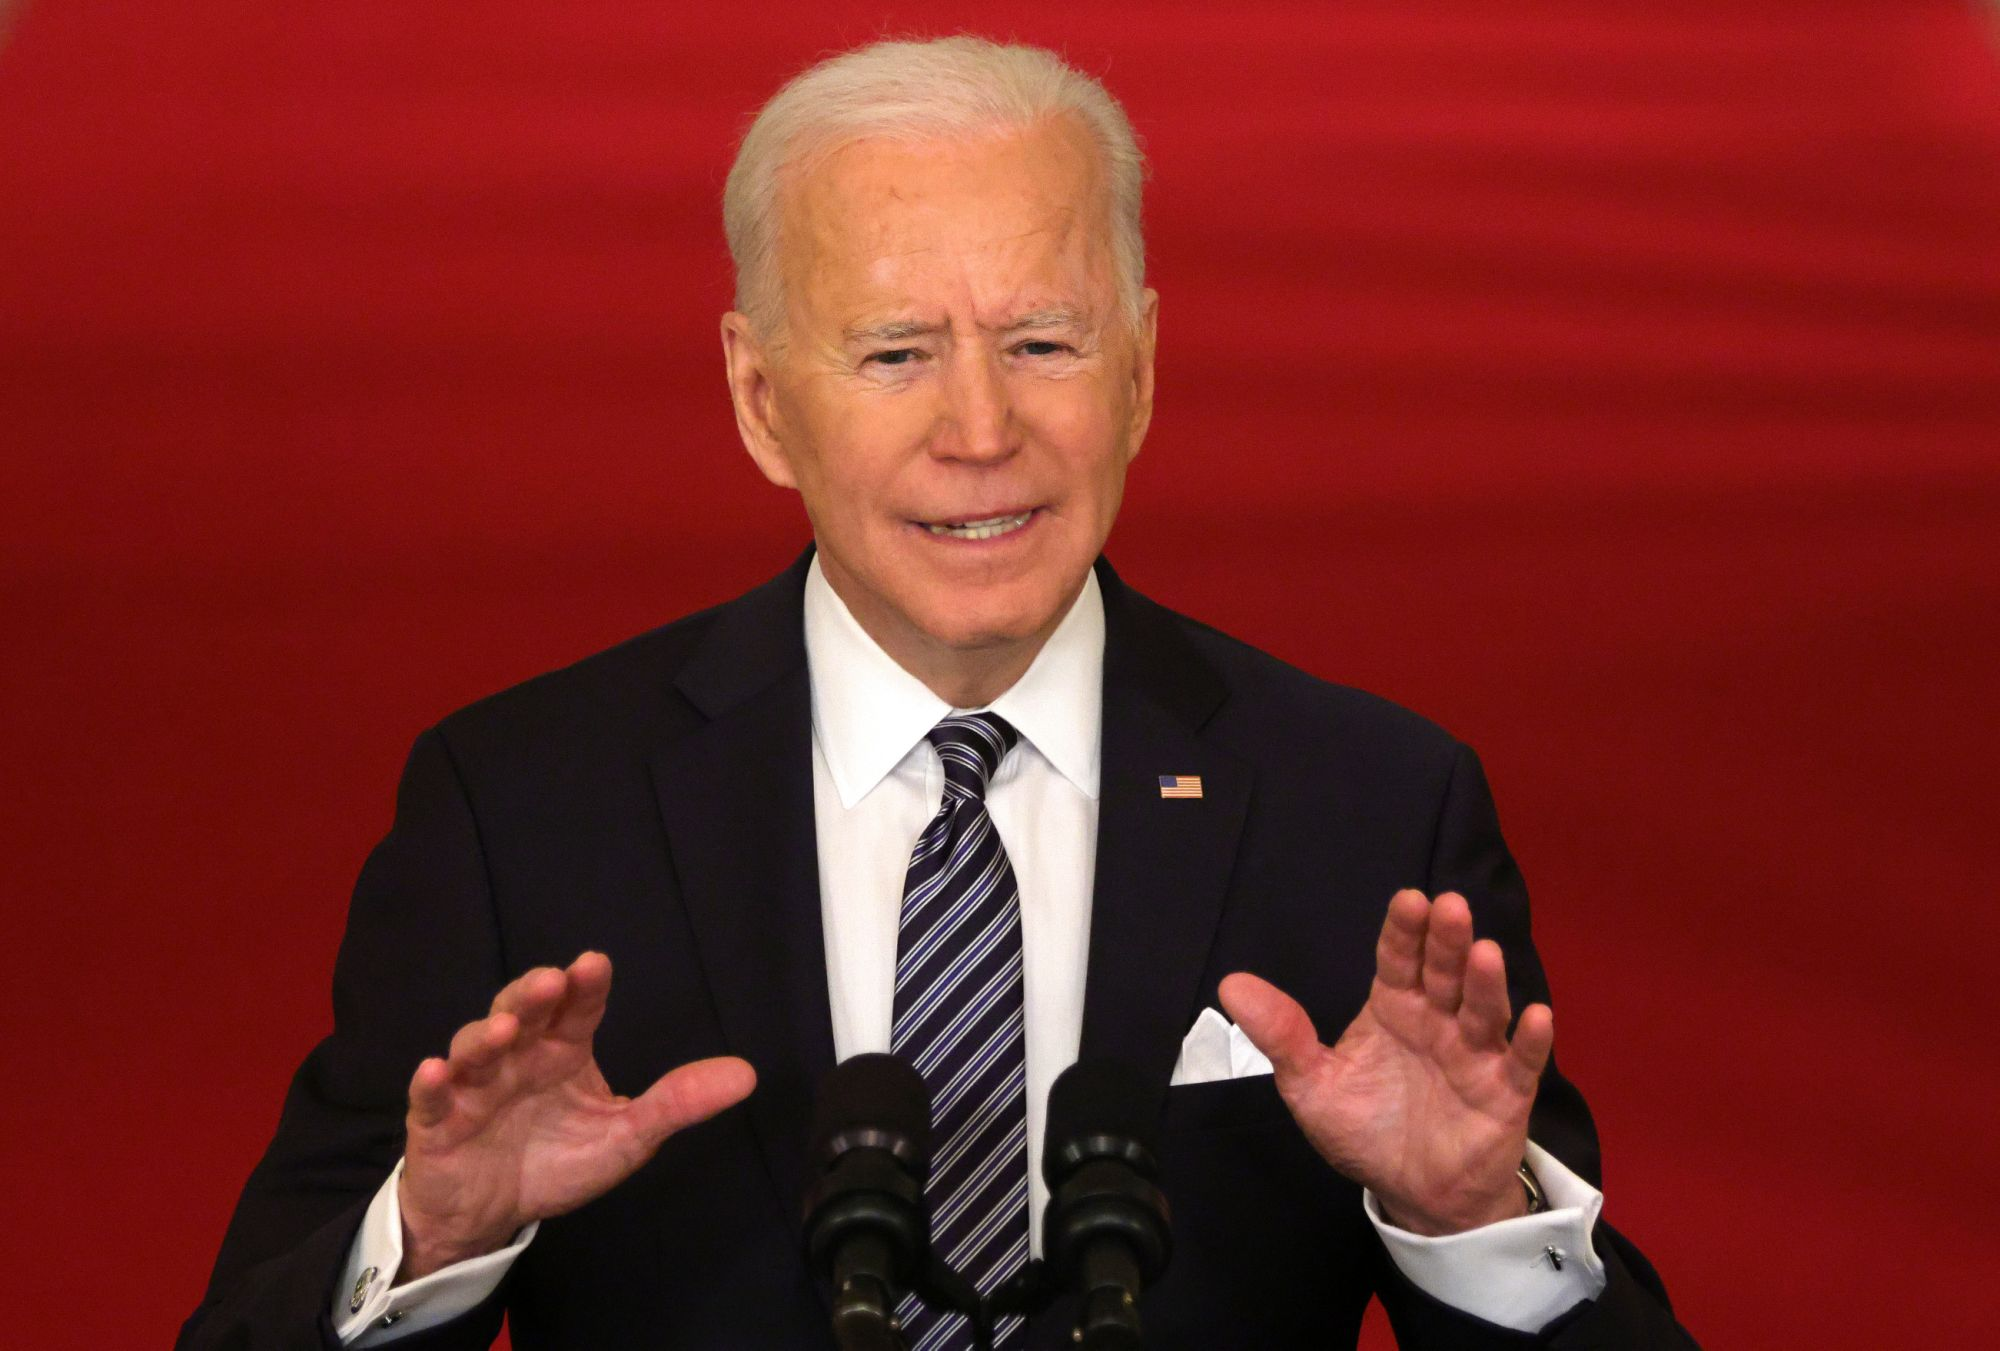 5-tax-hikes-that-may-be-coming-under-biden:-strategist